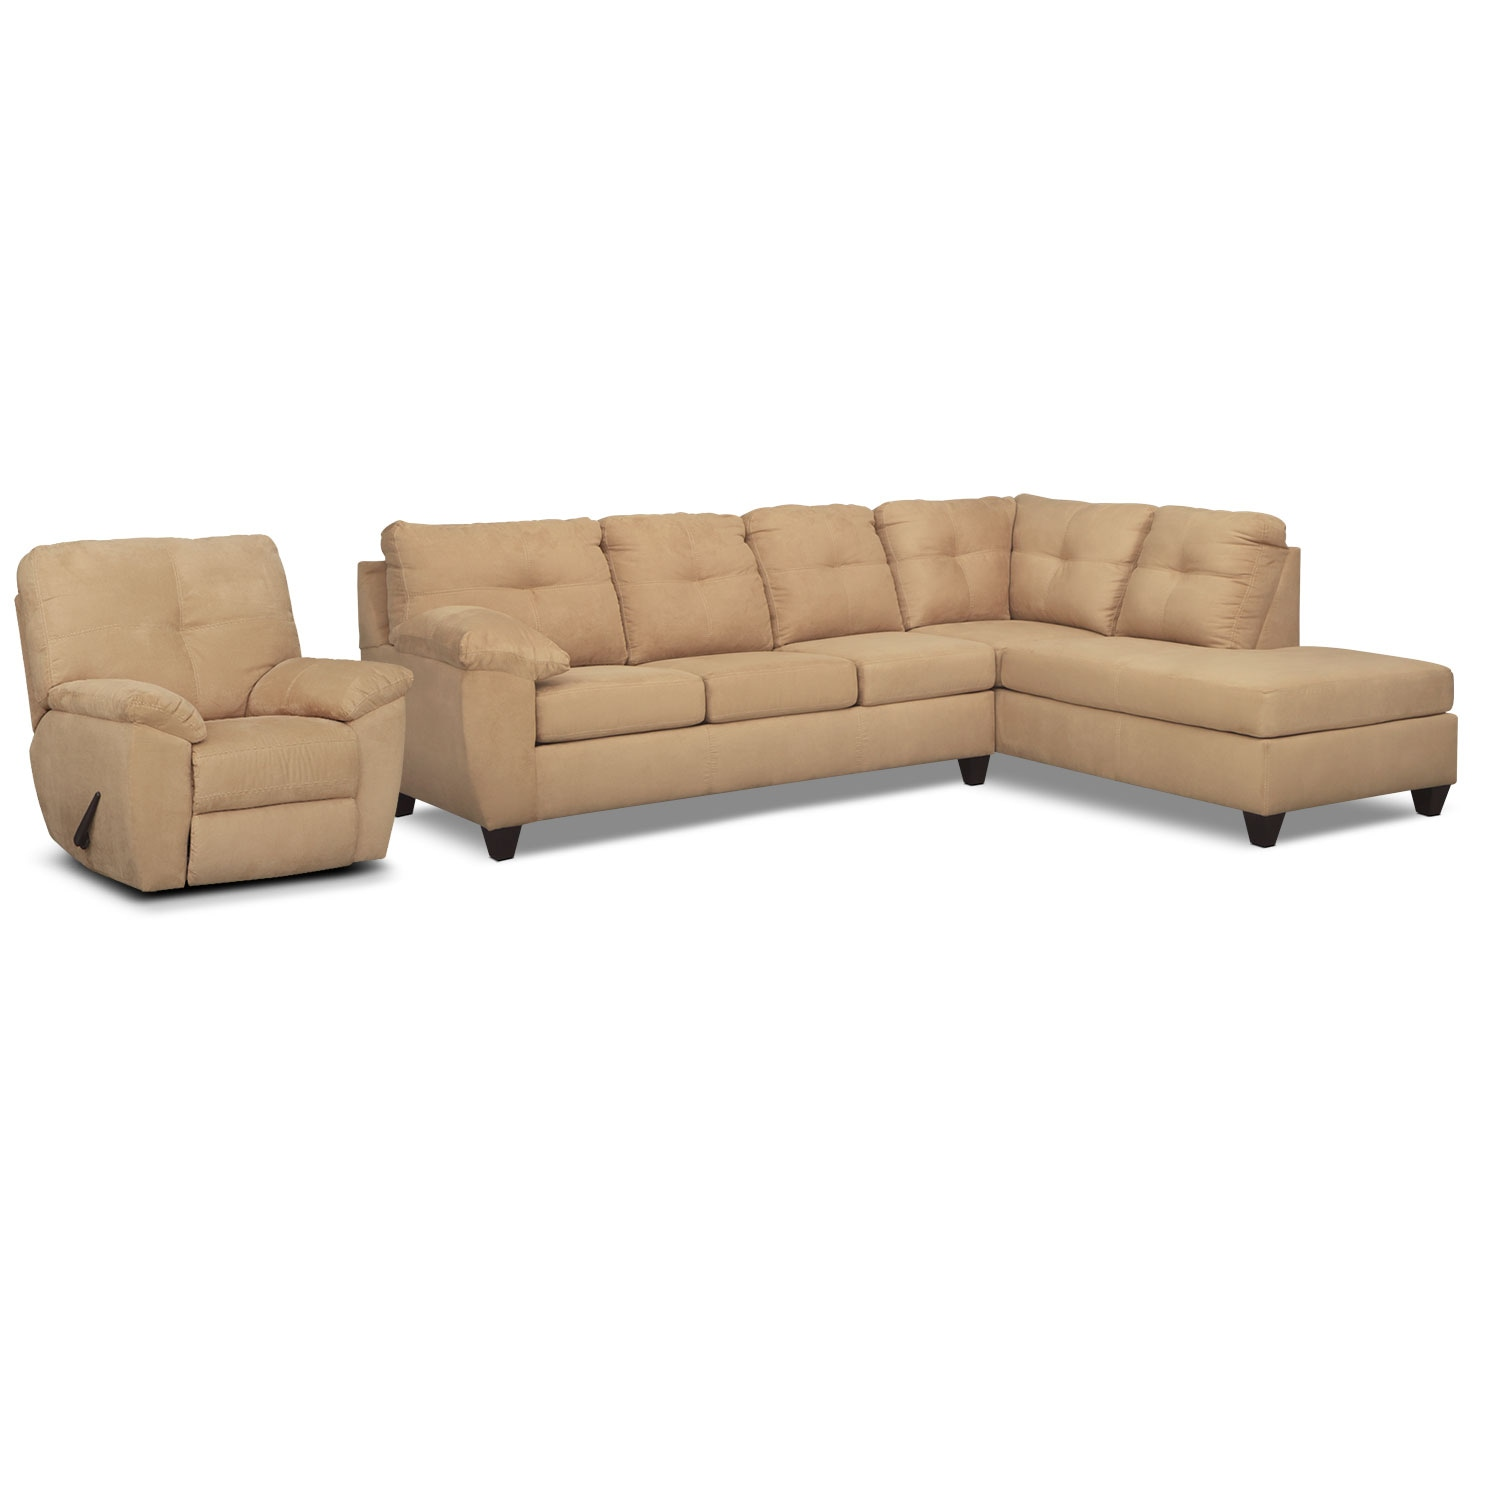 Rialto 2-Piece Sectional with Right-Facing Chaise and Glider Recliner Set - Camel